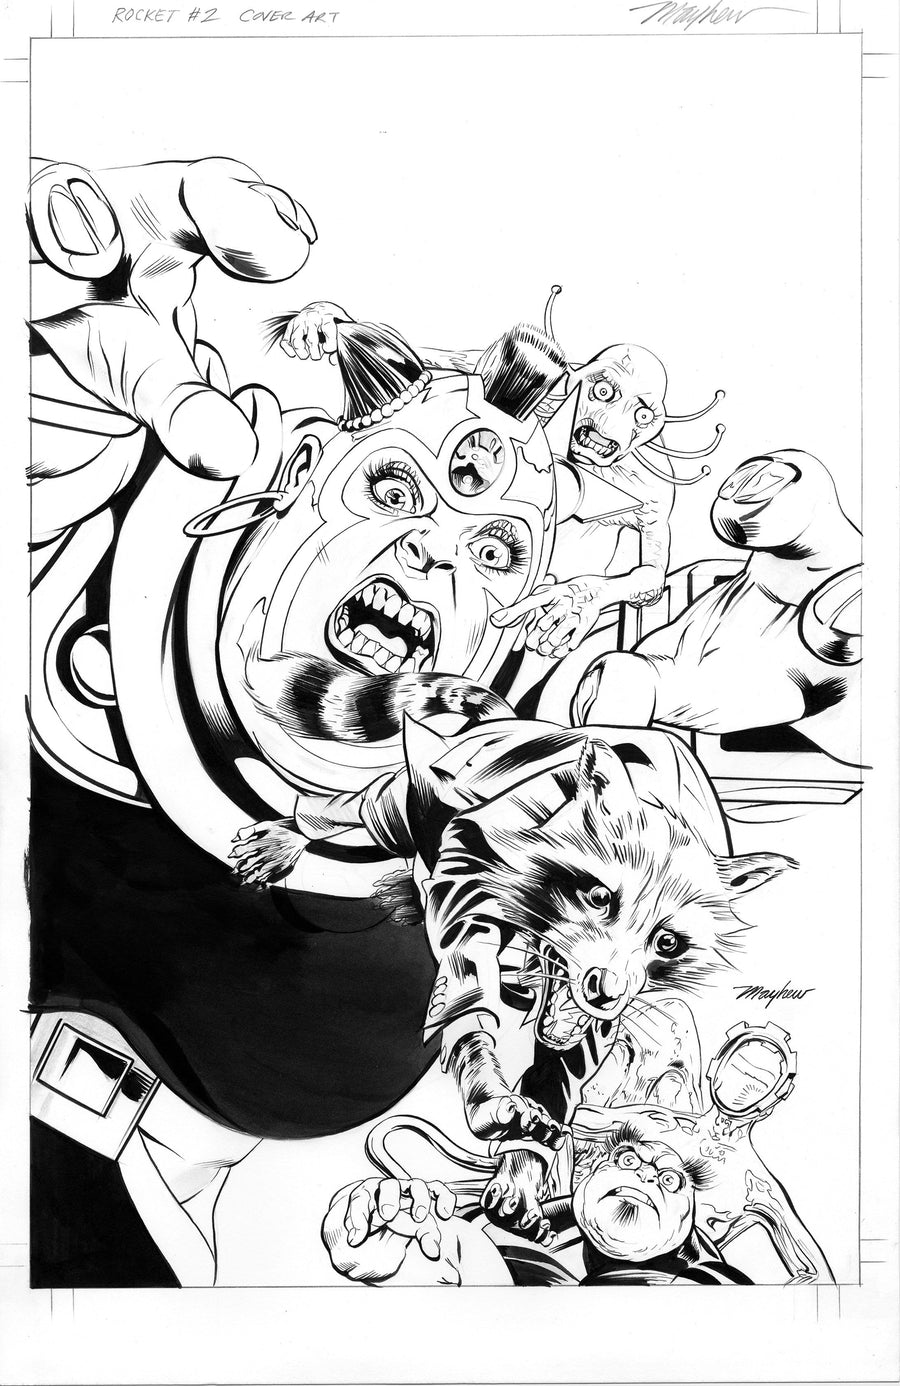 Mike Mayhew Original ROCKET #2 (2017) B&W Cover Art